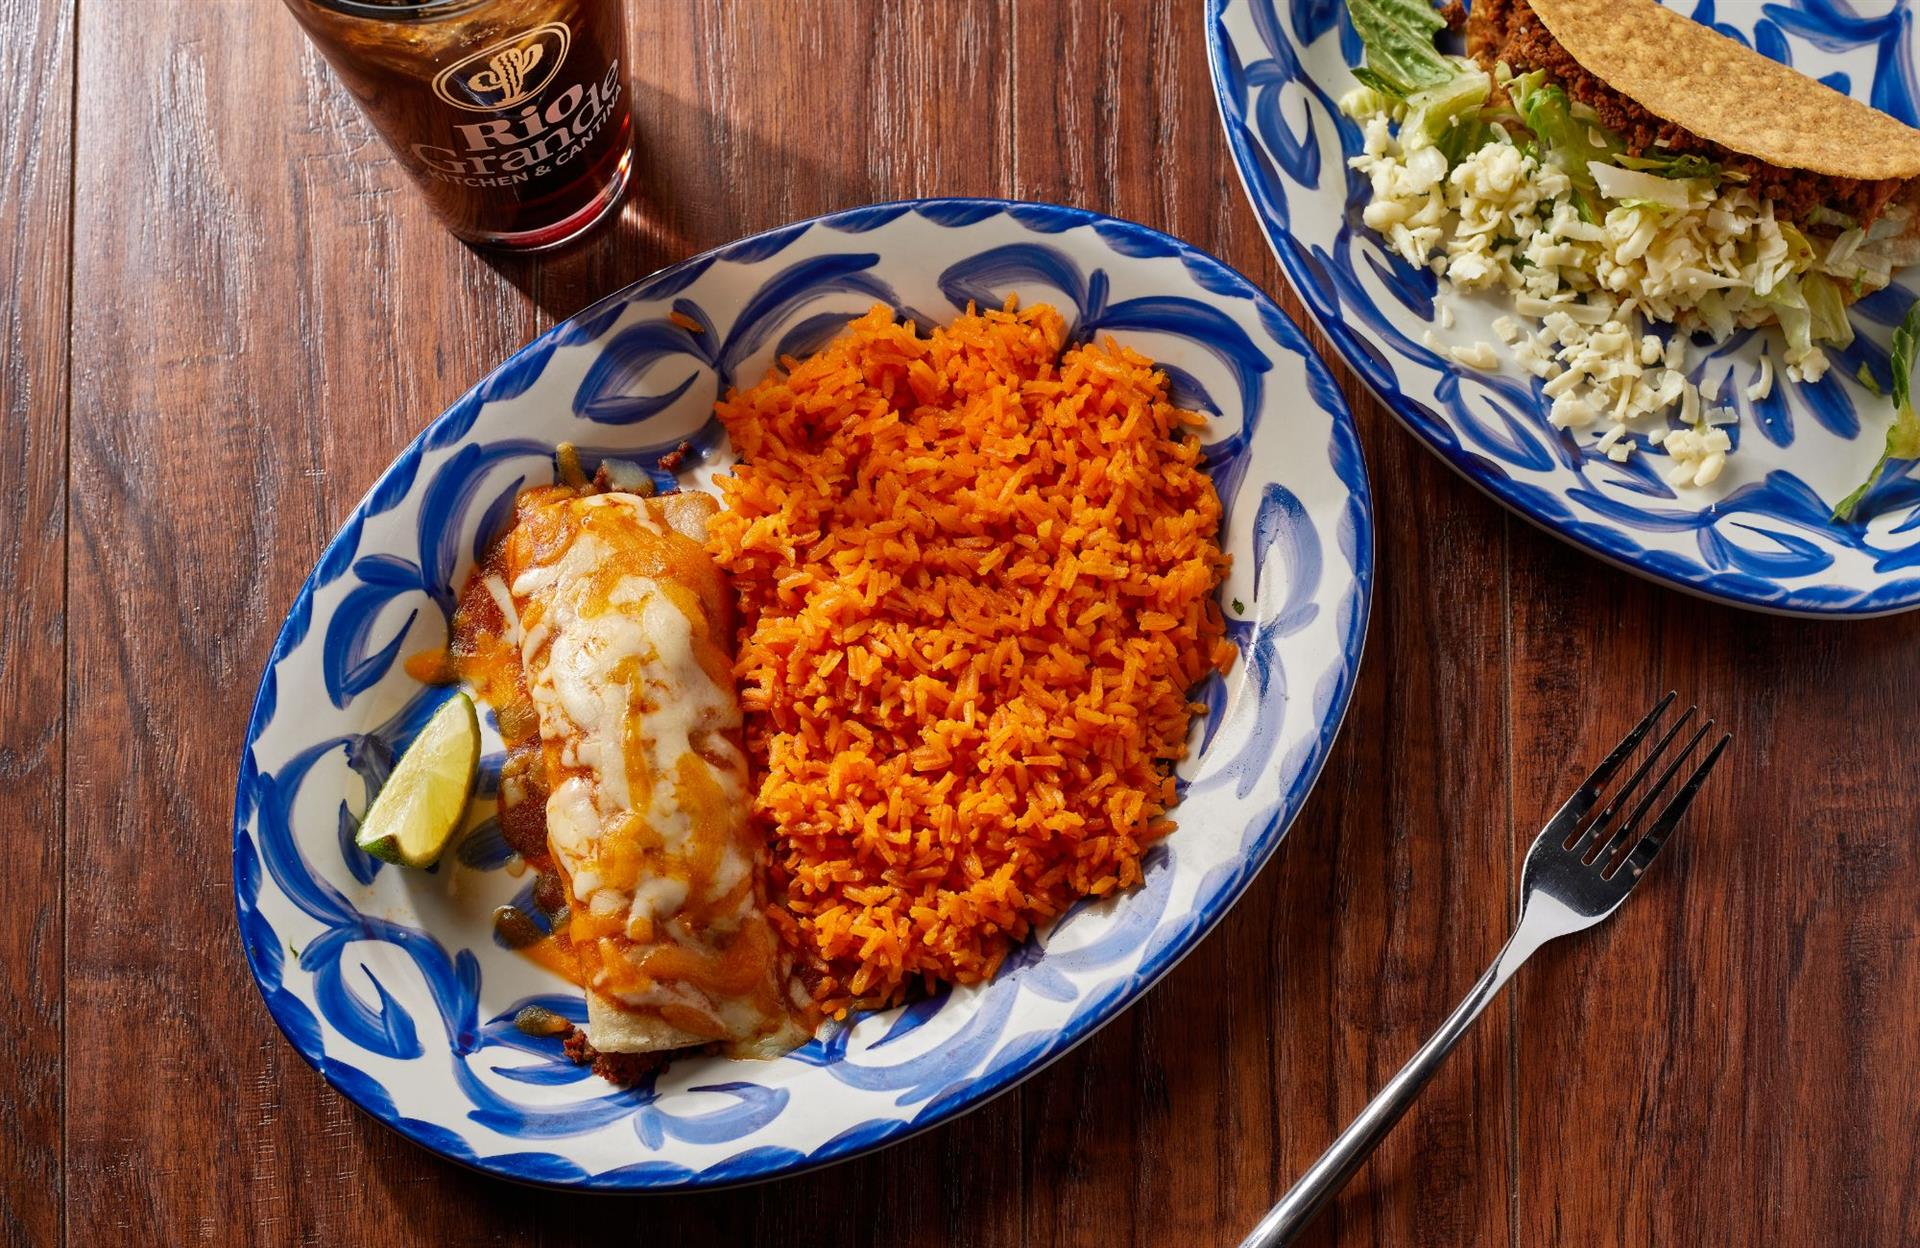 enchilada topped with sauce and melted cheese with spanish rice on the side.